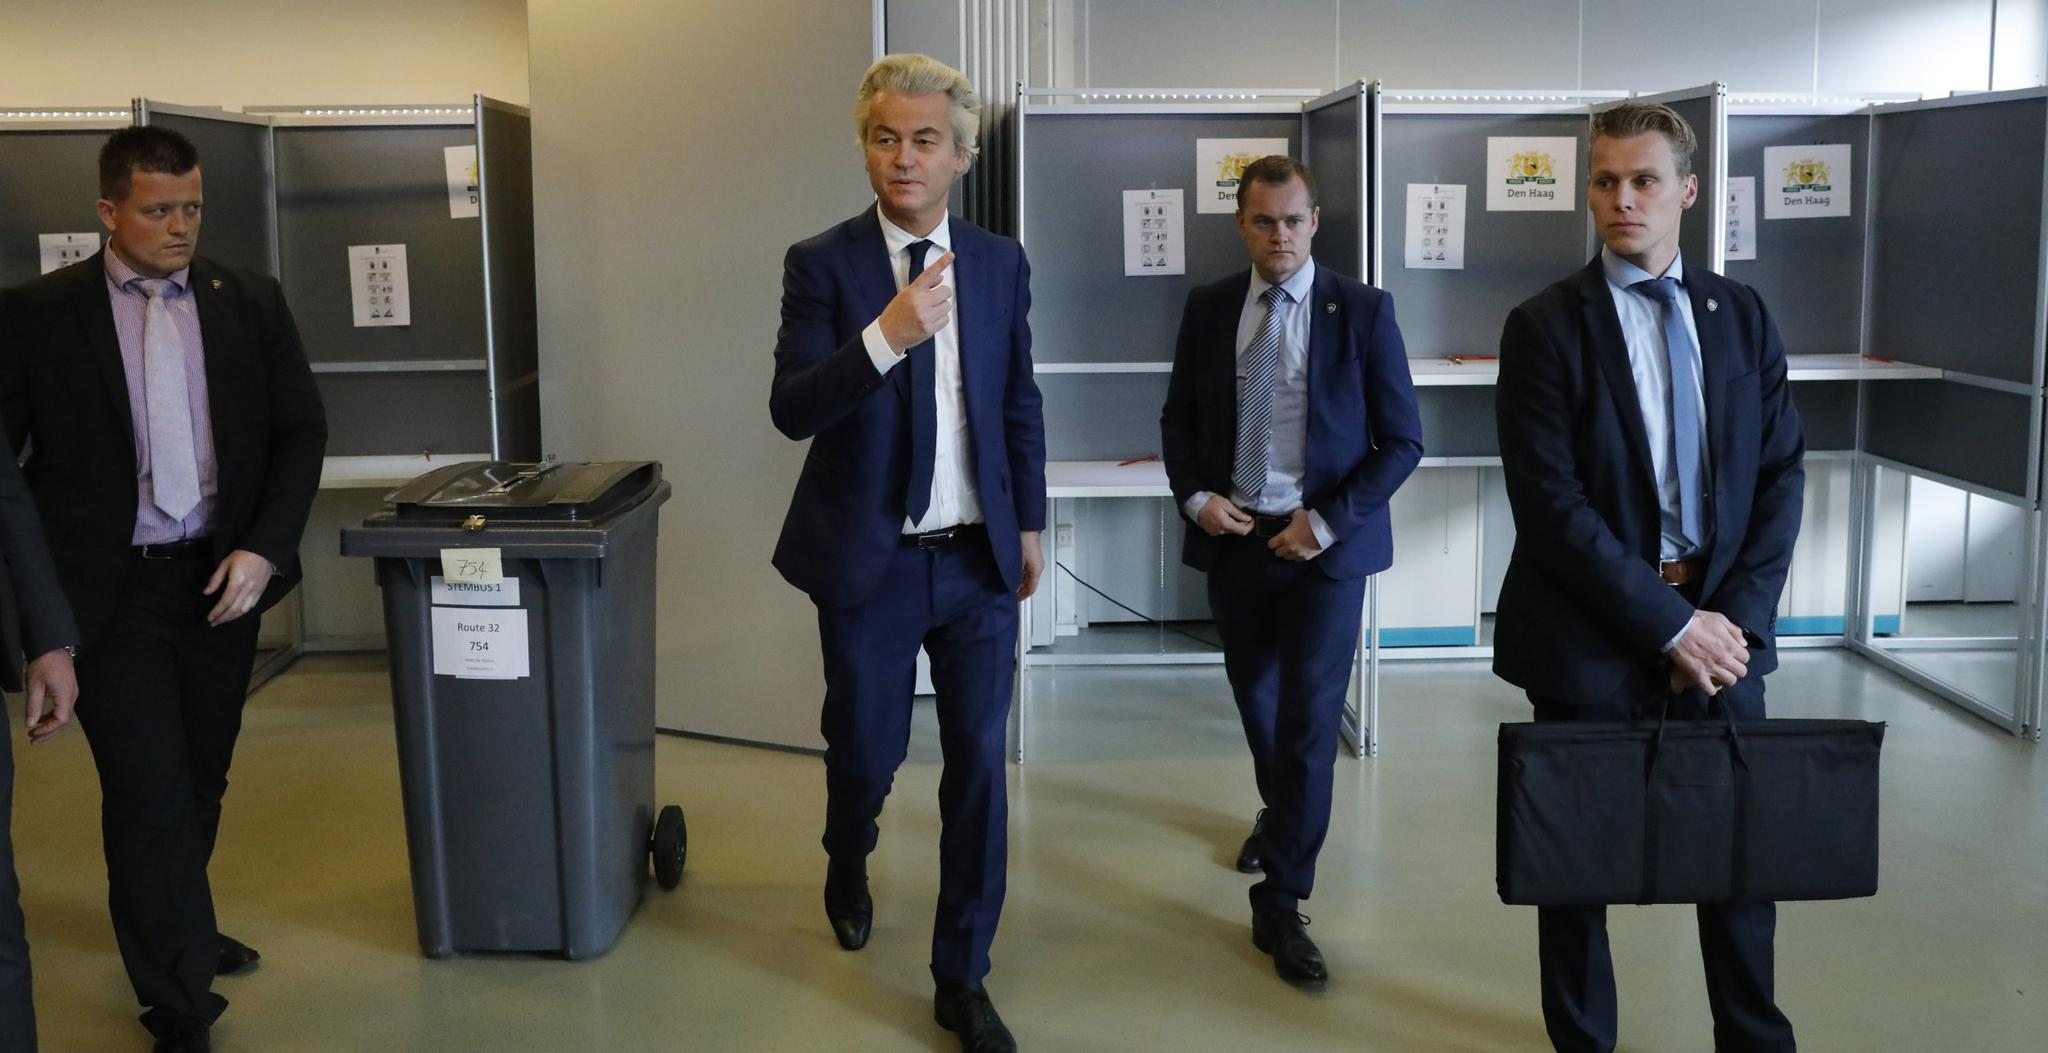 Dutch far-right politician Geert Wilders of the PVV party is surrounded by security as he votes in the general election in The Hague, Netherlands, on March 15.